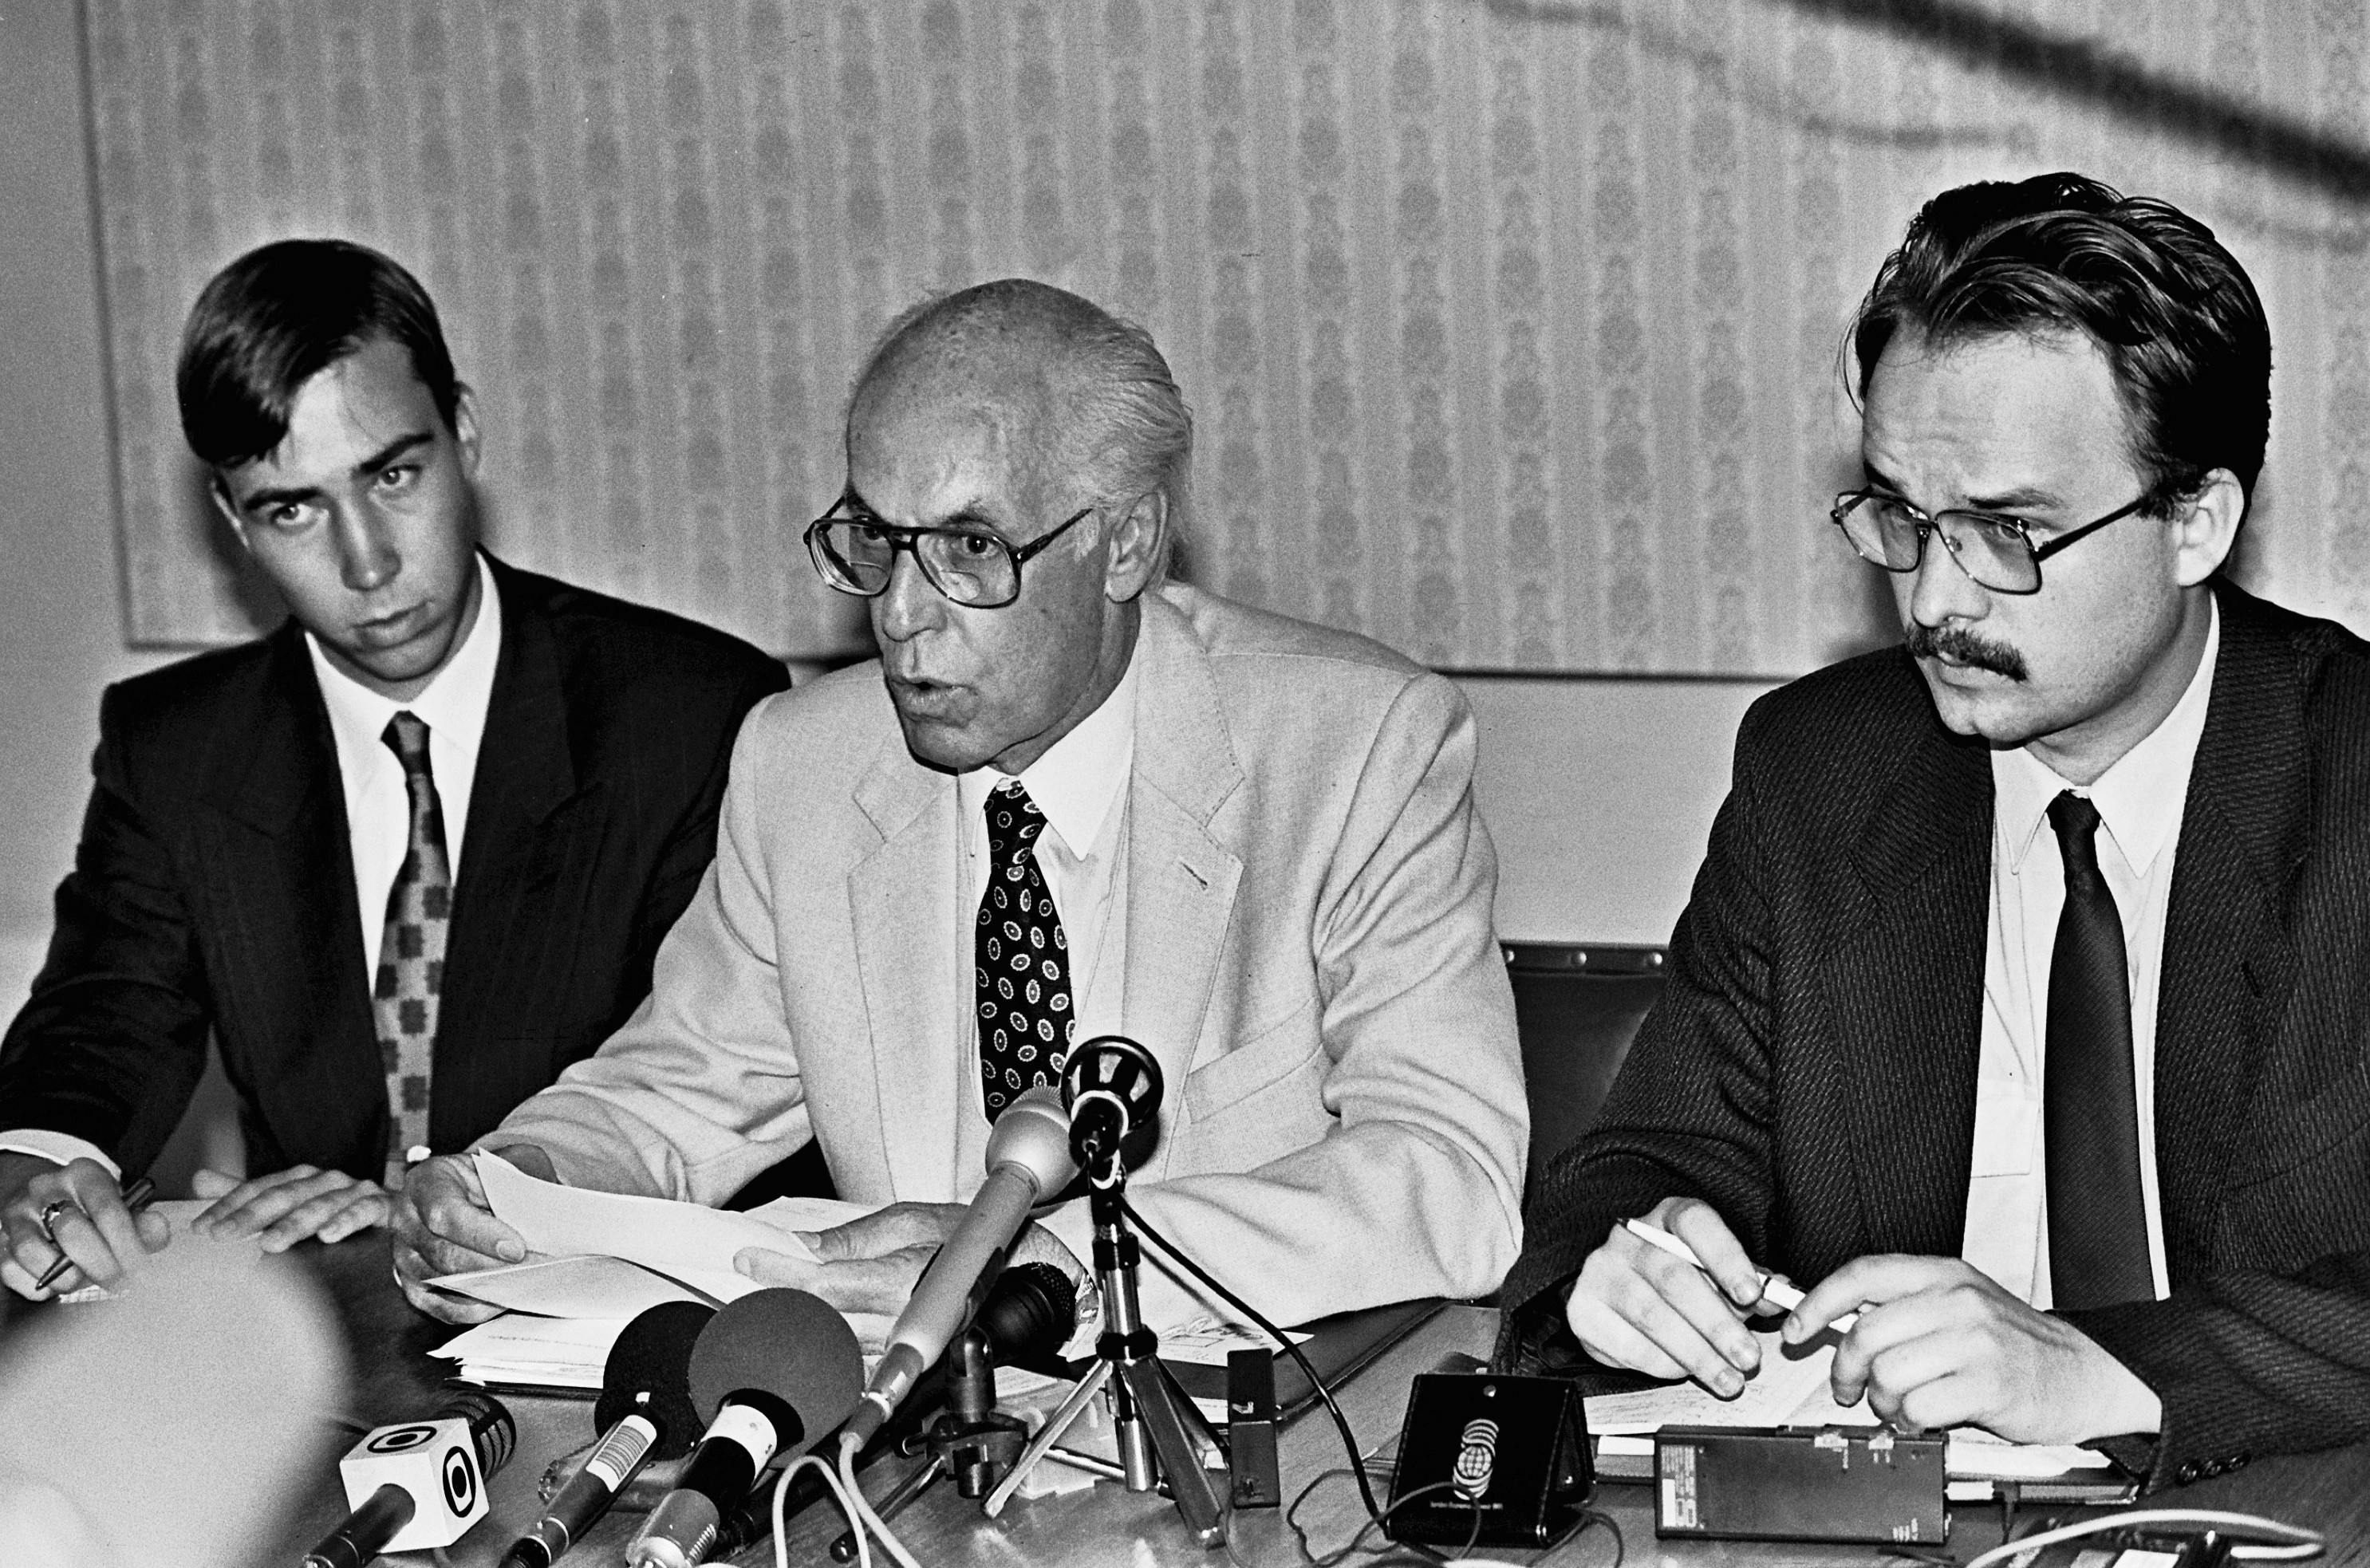 Having returned from Finland on the evening of 23 August 1991 to what was now the independent Republic of Estonia, foreign minister Lennart Meri is attending a press conference at the ministry of foreign affairs on Toompea Hill with Toivo Klaar and Tiit Pruuli. Photo by Peeter Langovits, from the archive of the foreign ministry.